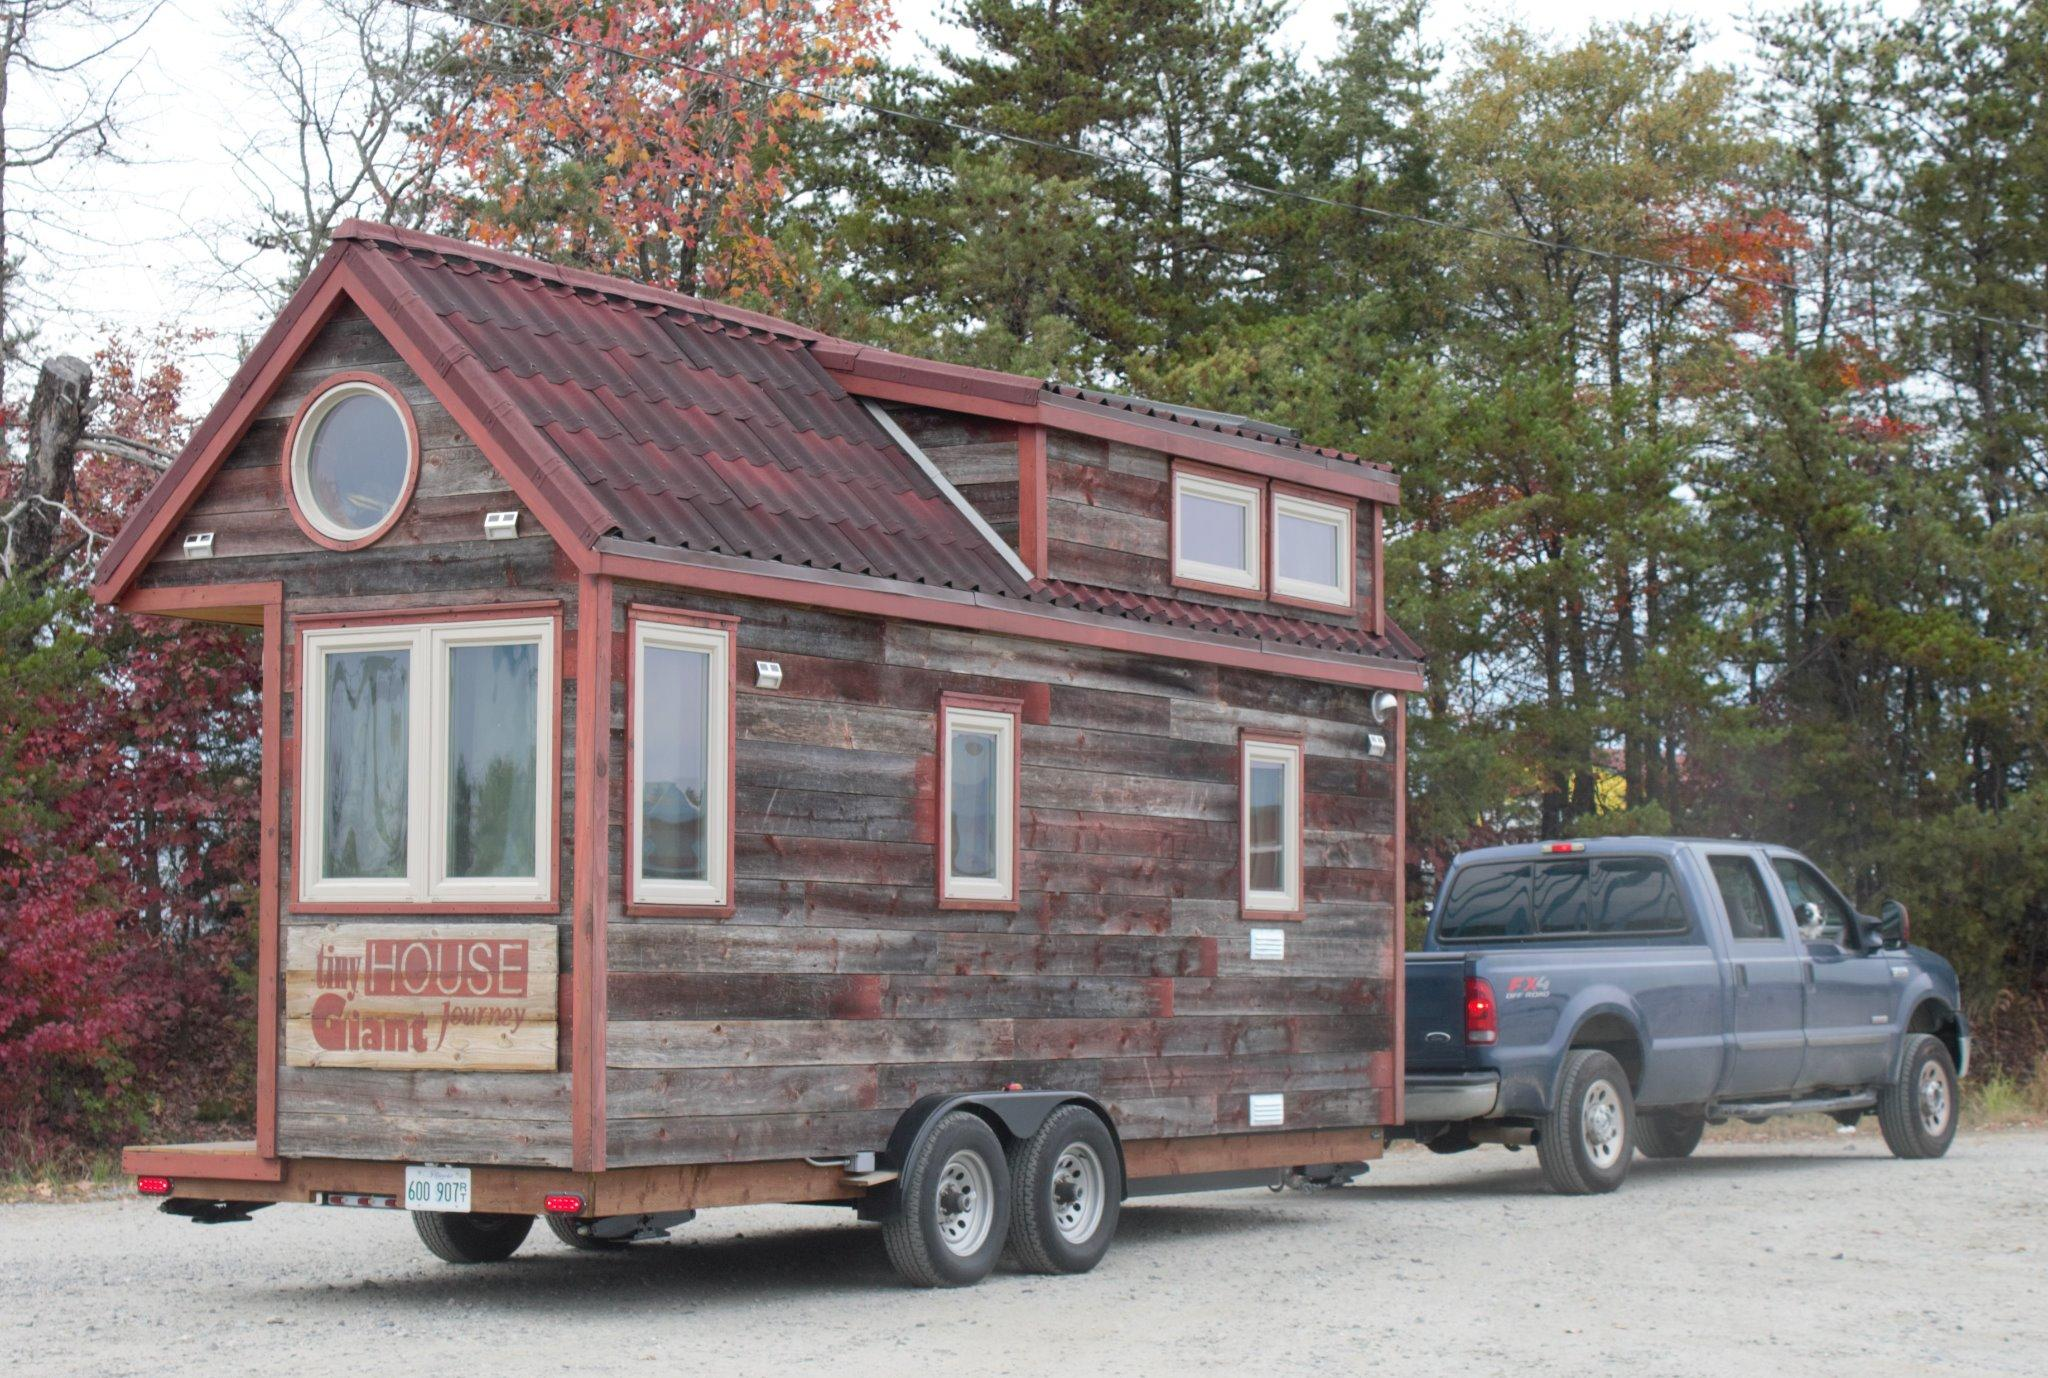 Ondurausa On Twitter Quot Tiny House Giant Journey Came By